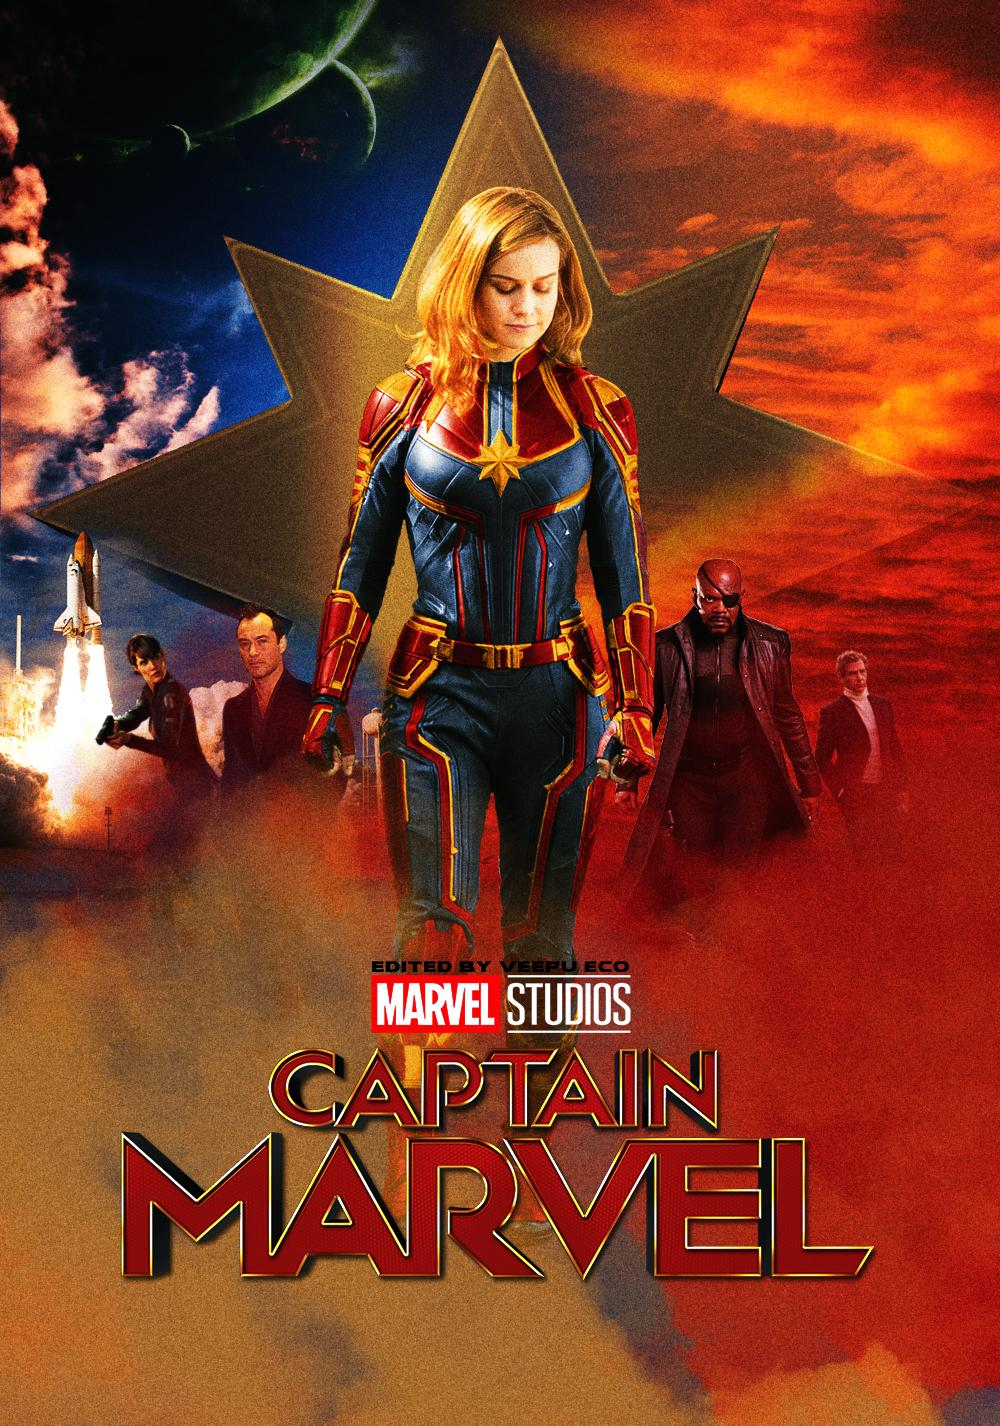 Captain Marvel Brie Larson From Avengers Hd Wallpapers